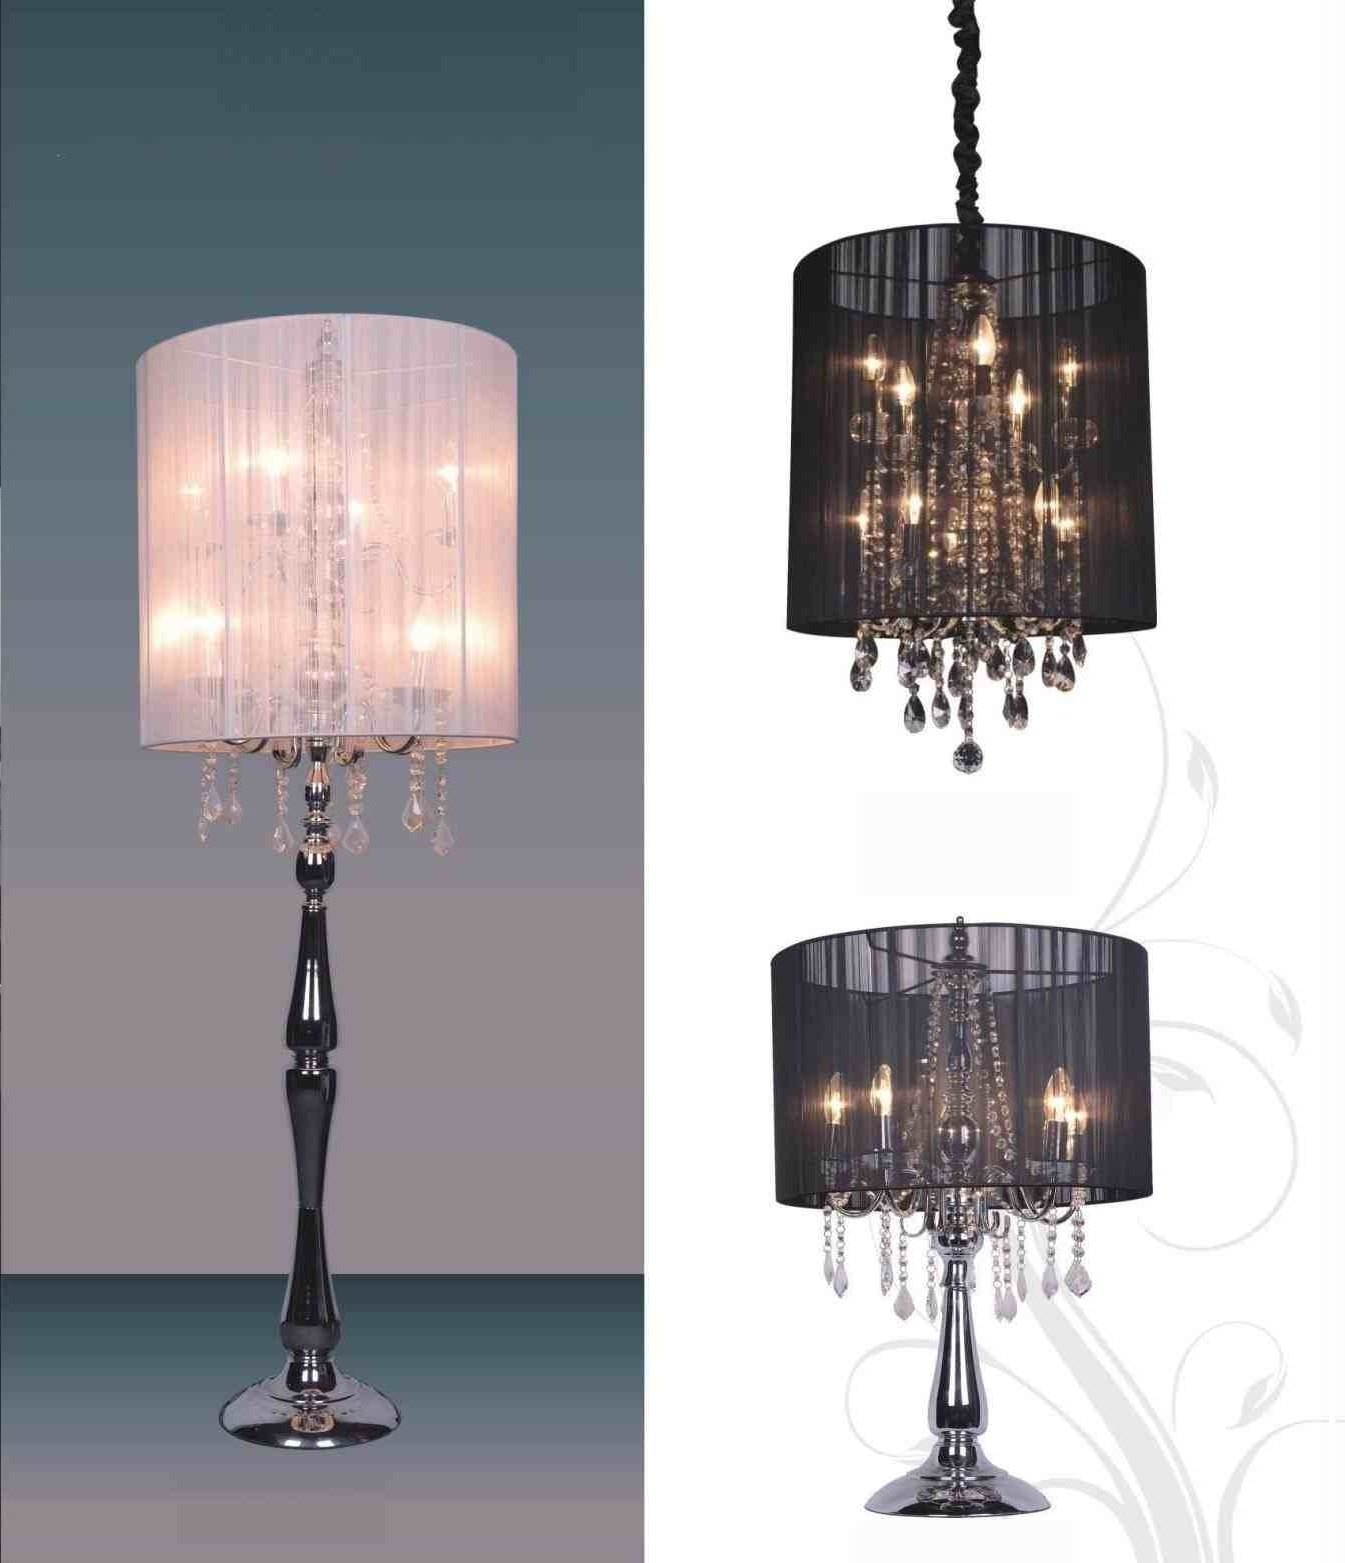 Ideasrhgotohomerepaircom-Style-Lamp-Rhpluslampscom-Chandelier-Small for 2018 Small Chandelier Table Lamps